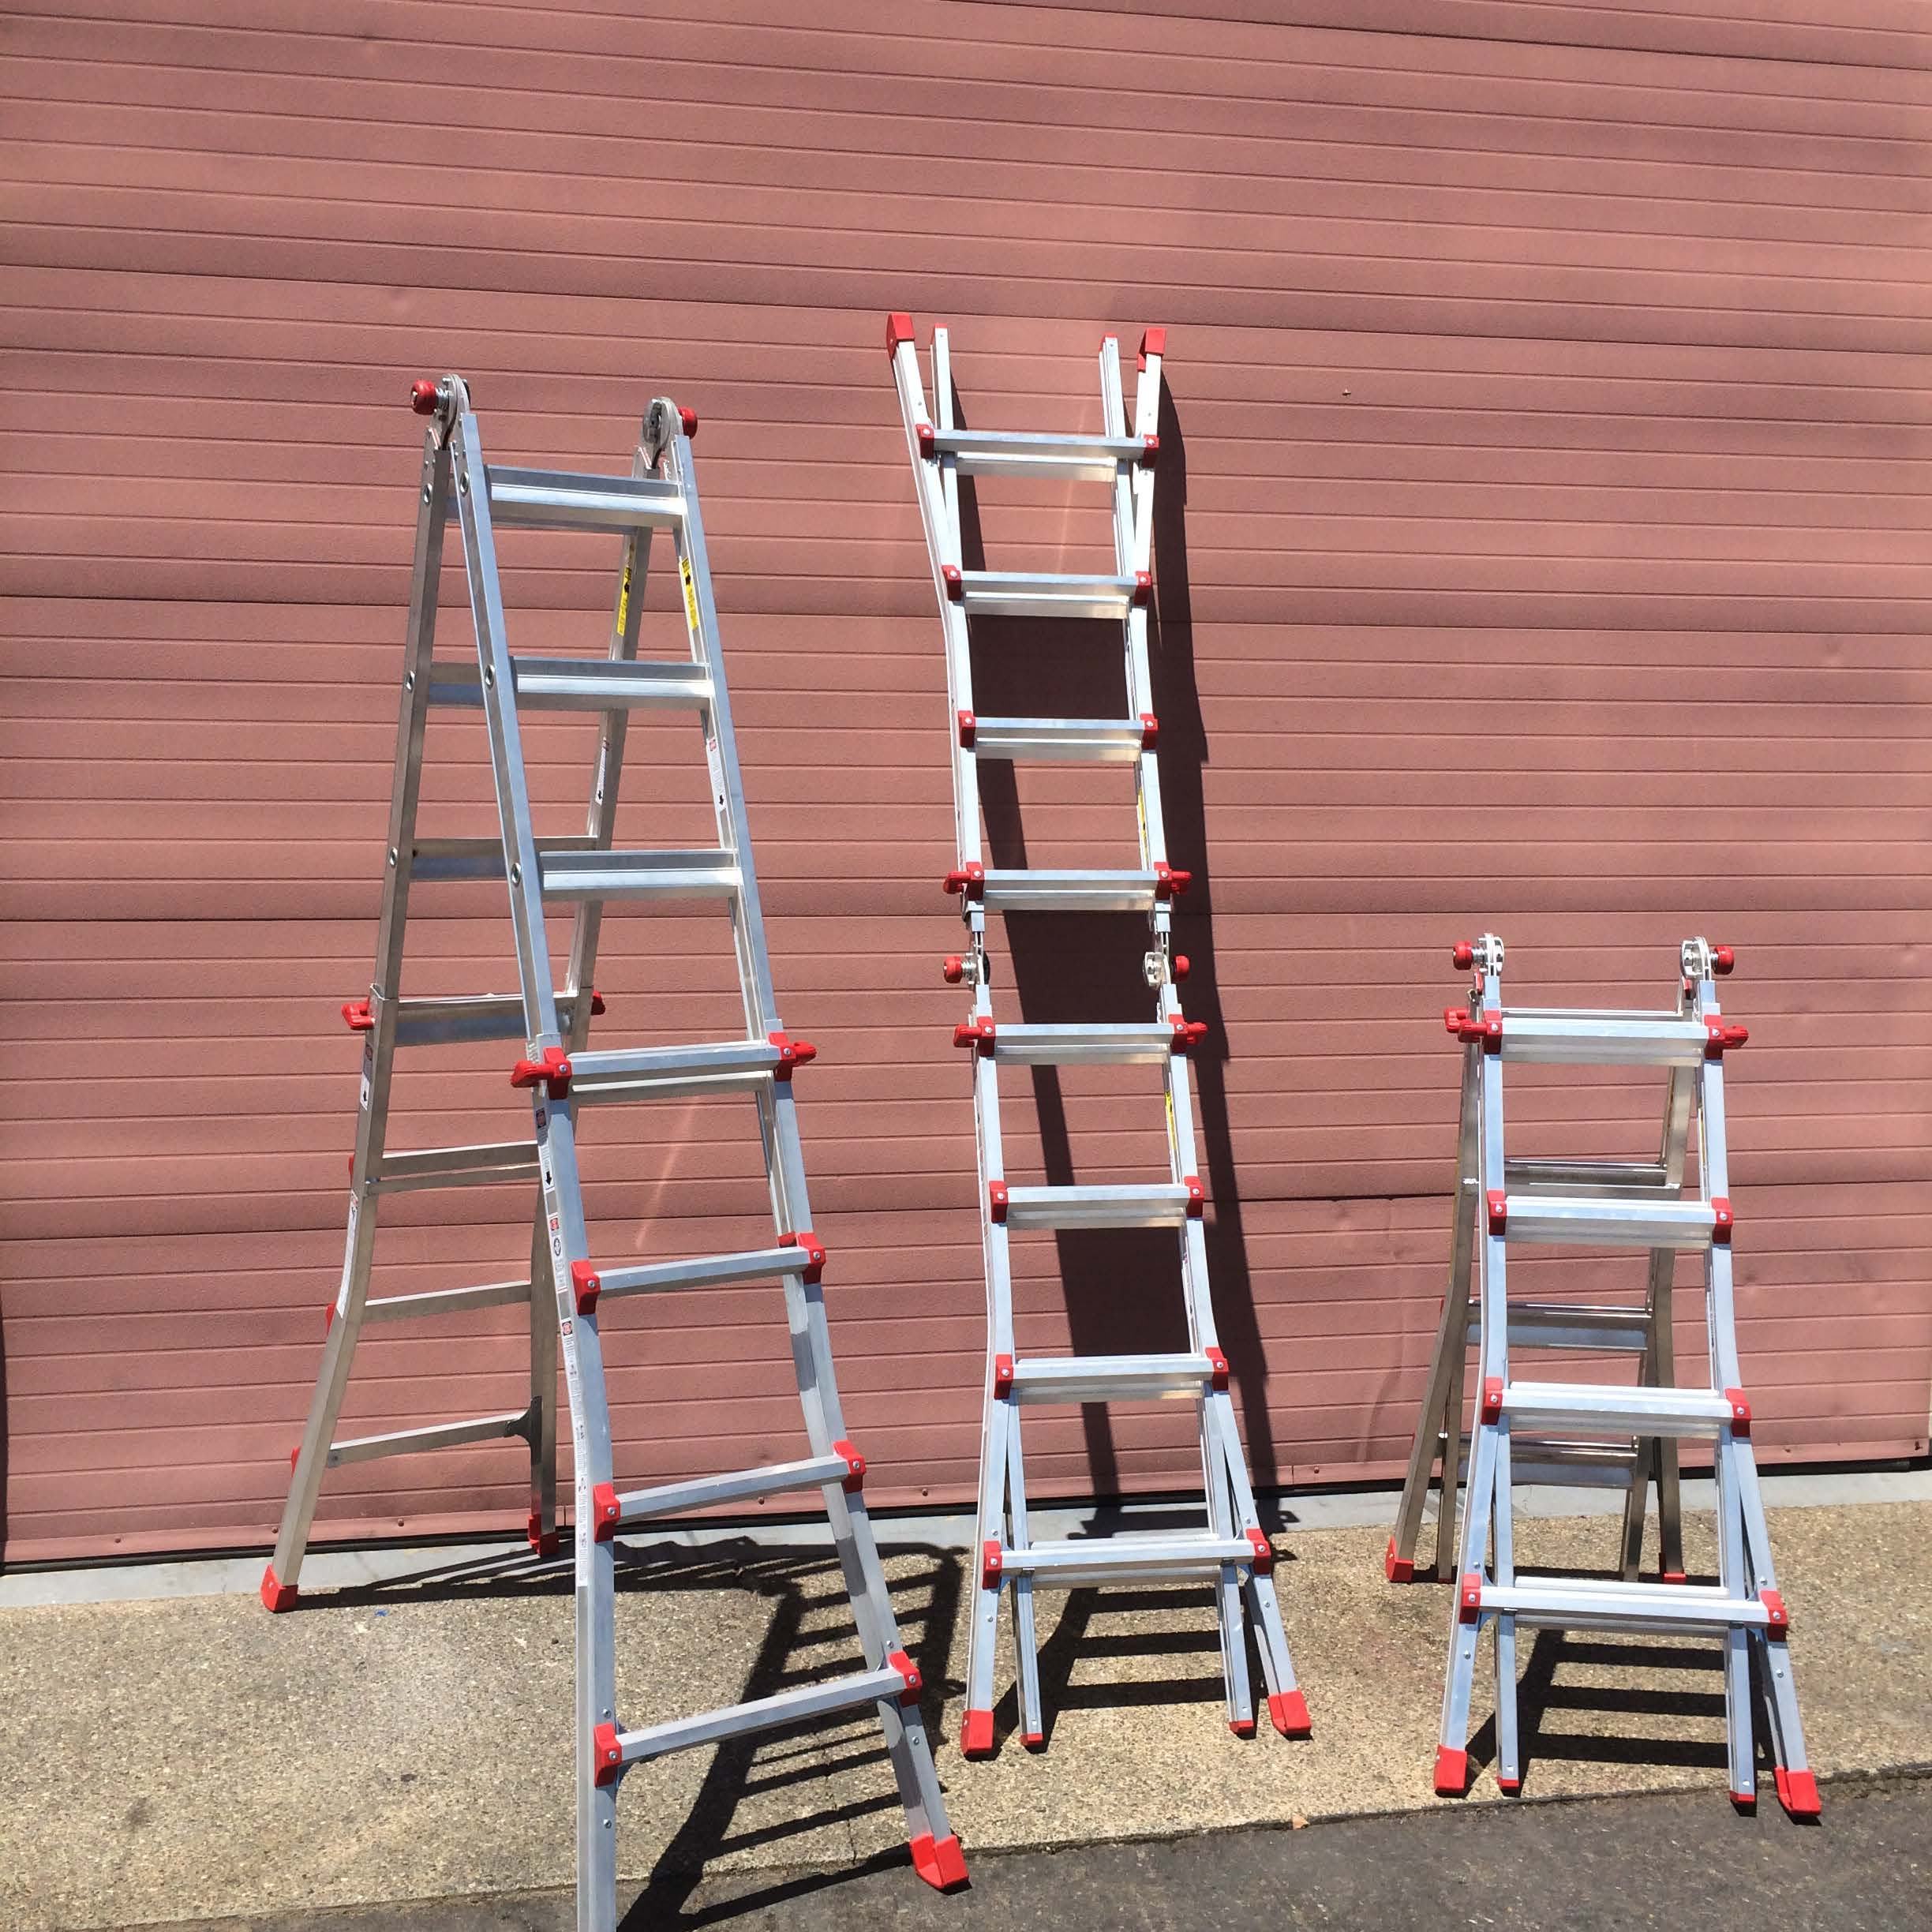 multi-function ladder, articulating ladders, multi-function ladder sacramento, articulating ladders sacramento, articulating ladders bay area, articulating ladder for sale, multi-function ladders oakland